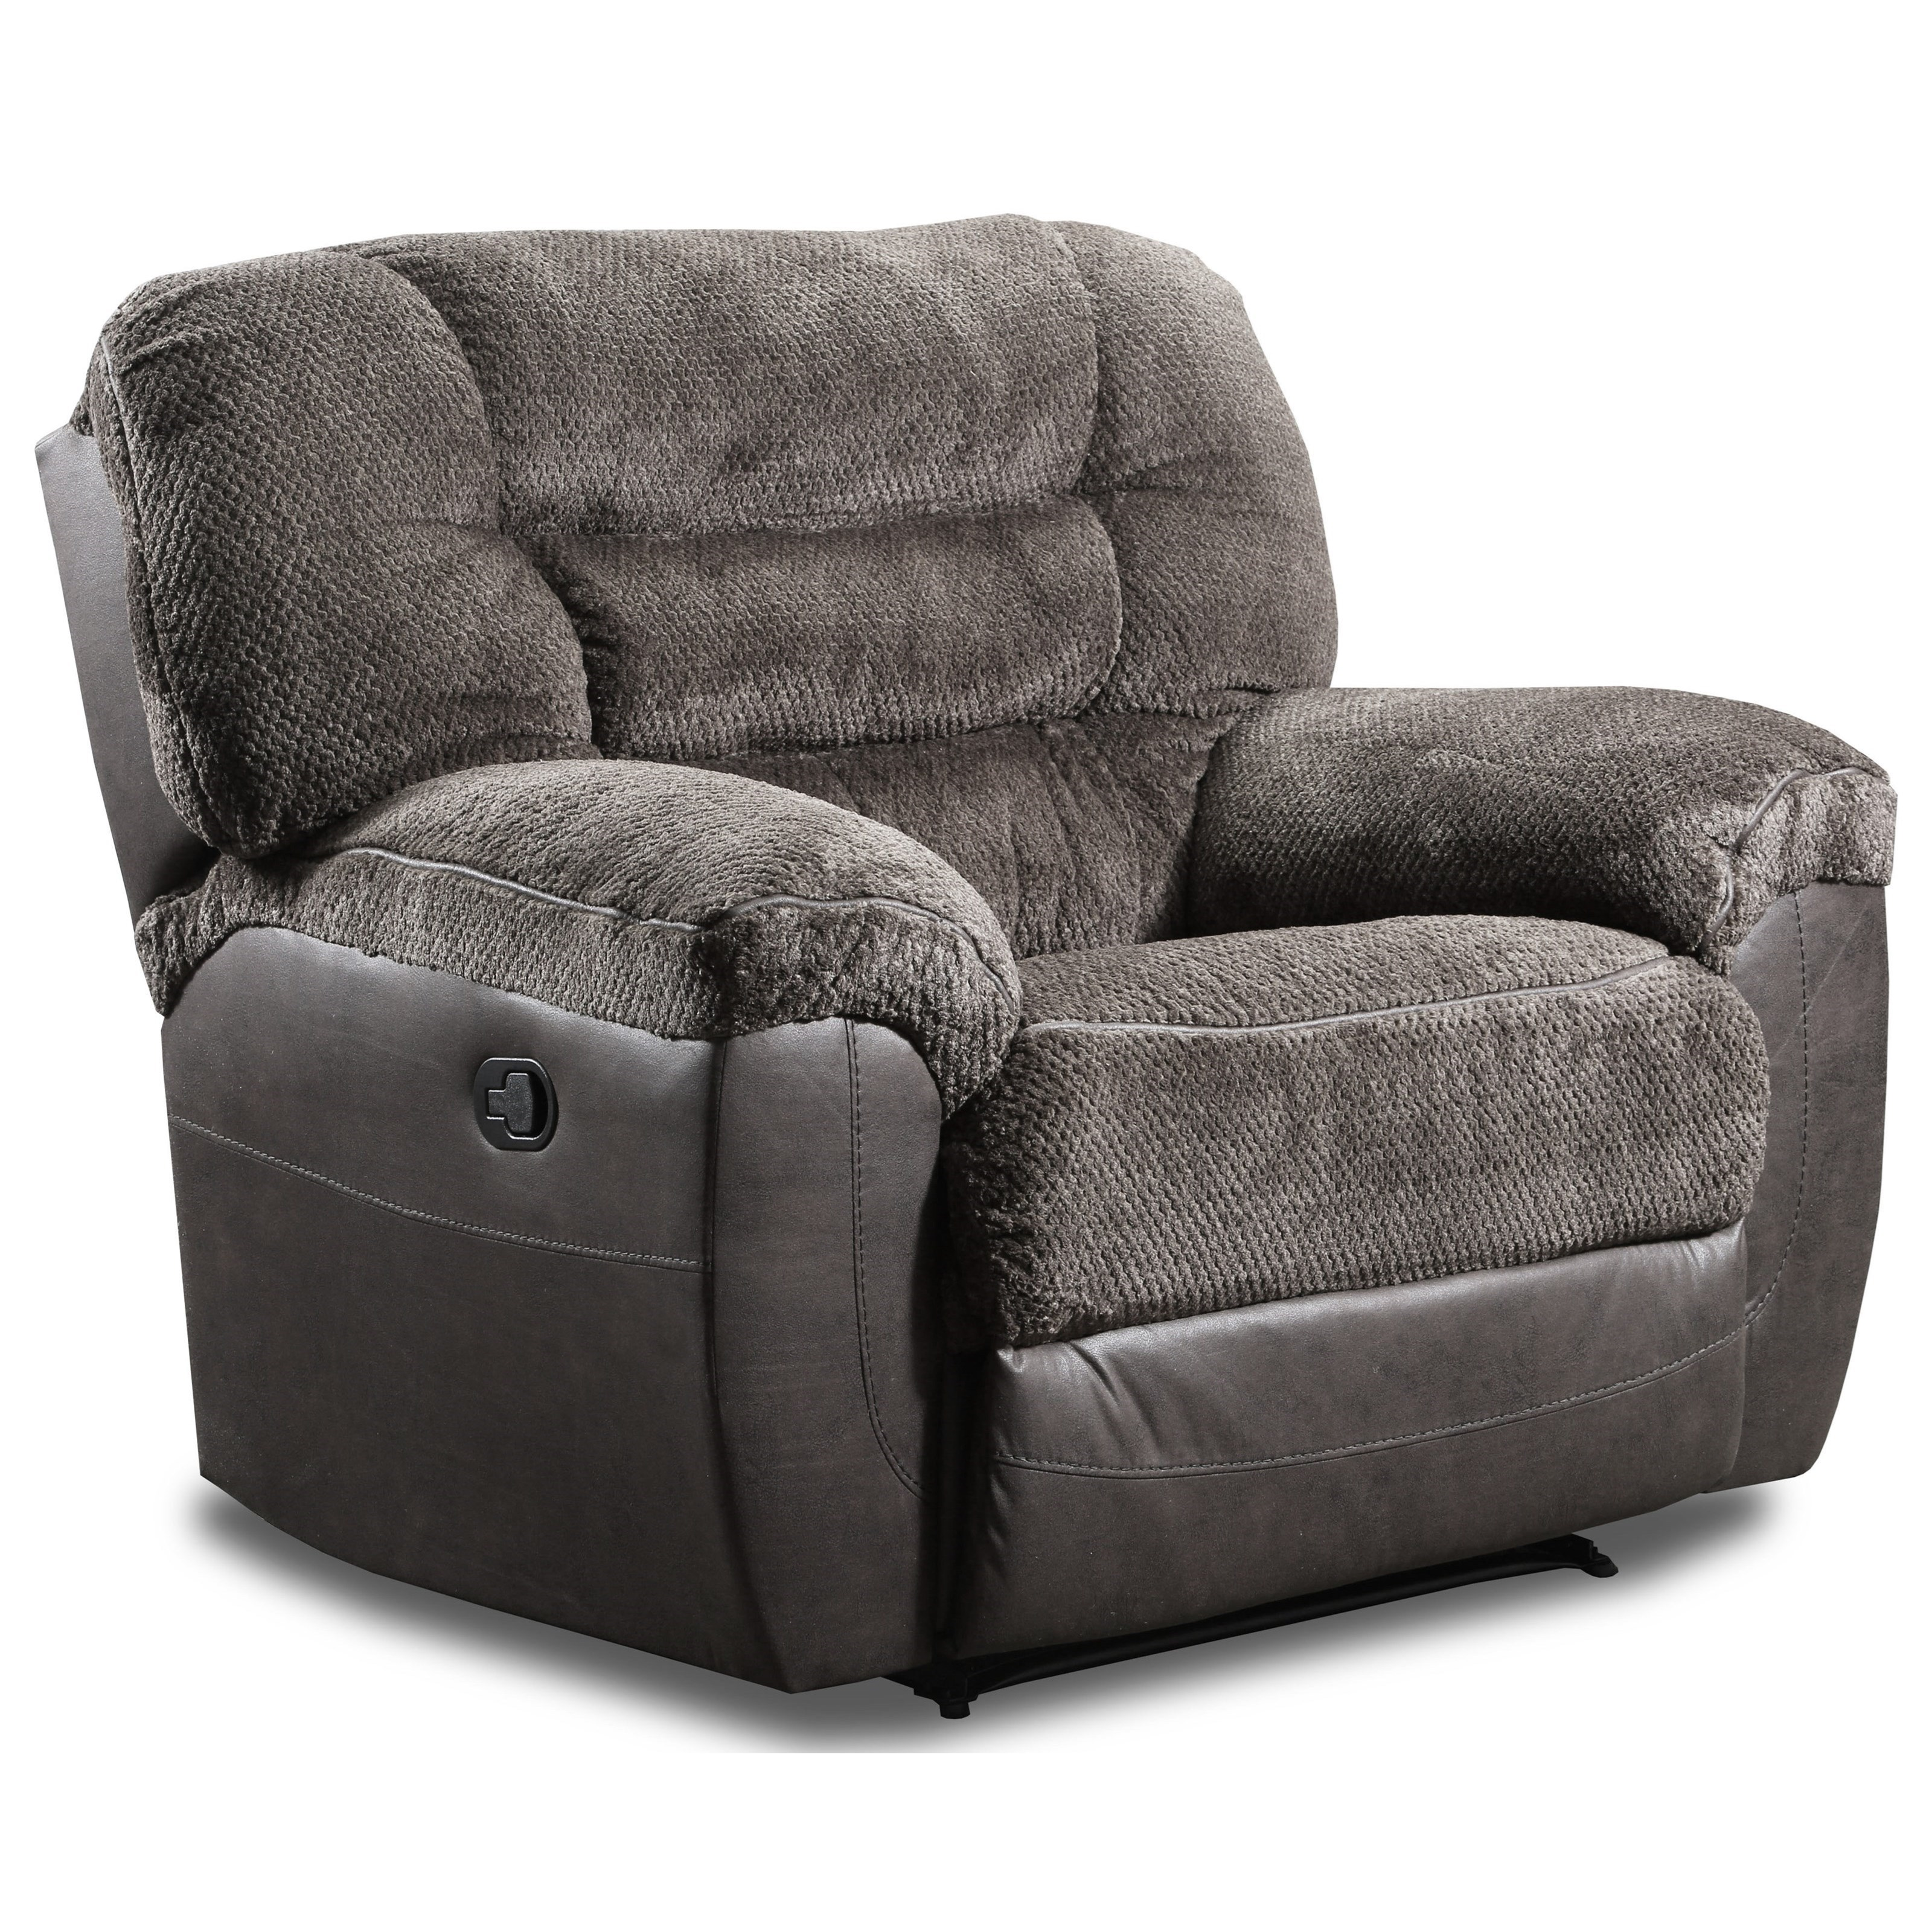 50439BR Reclining Cuddler Recliner by Simmons Upholstery at Dunk & Bright Furniture